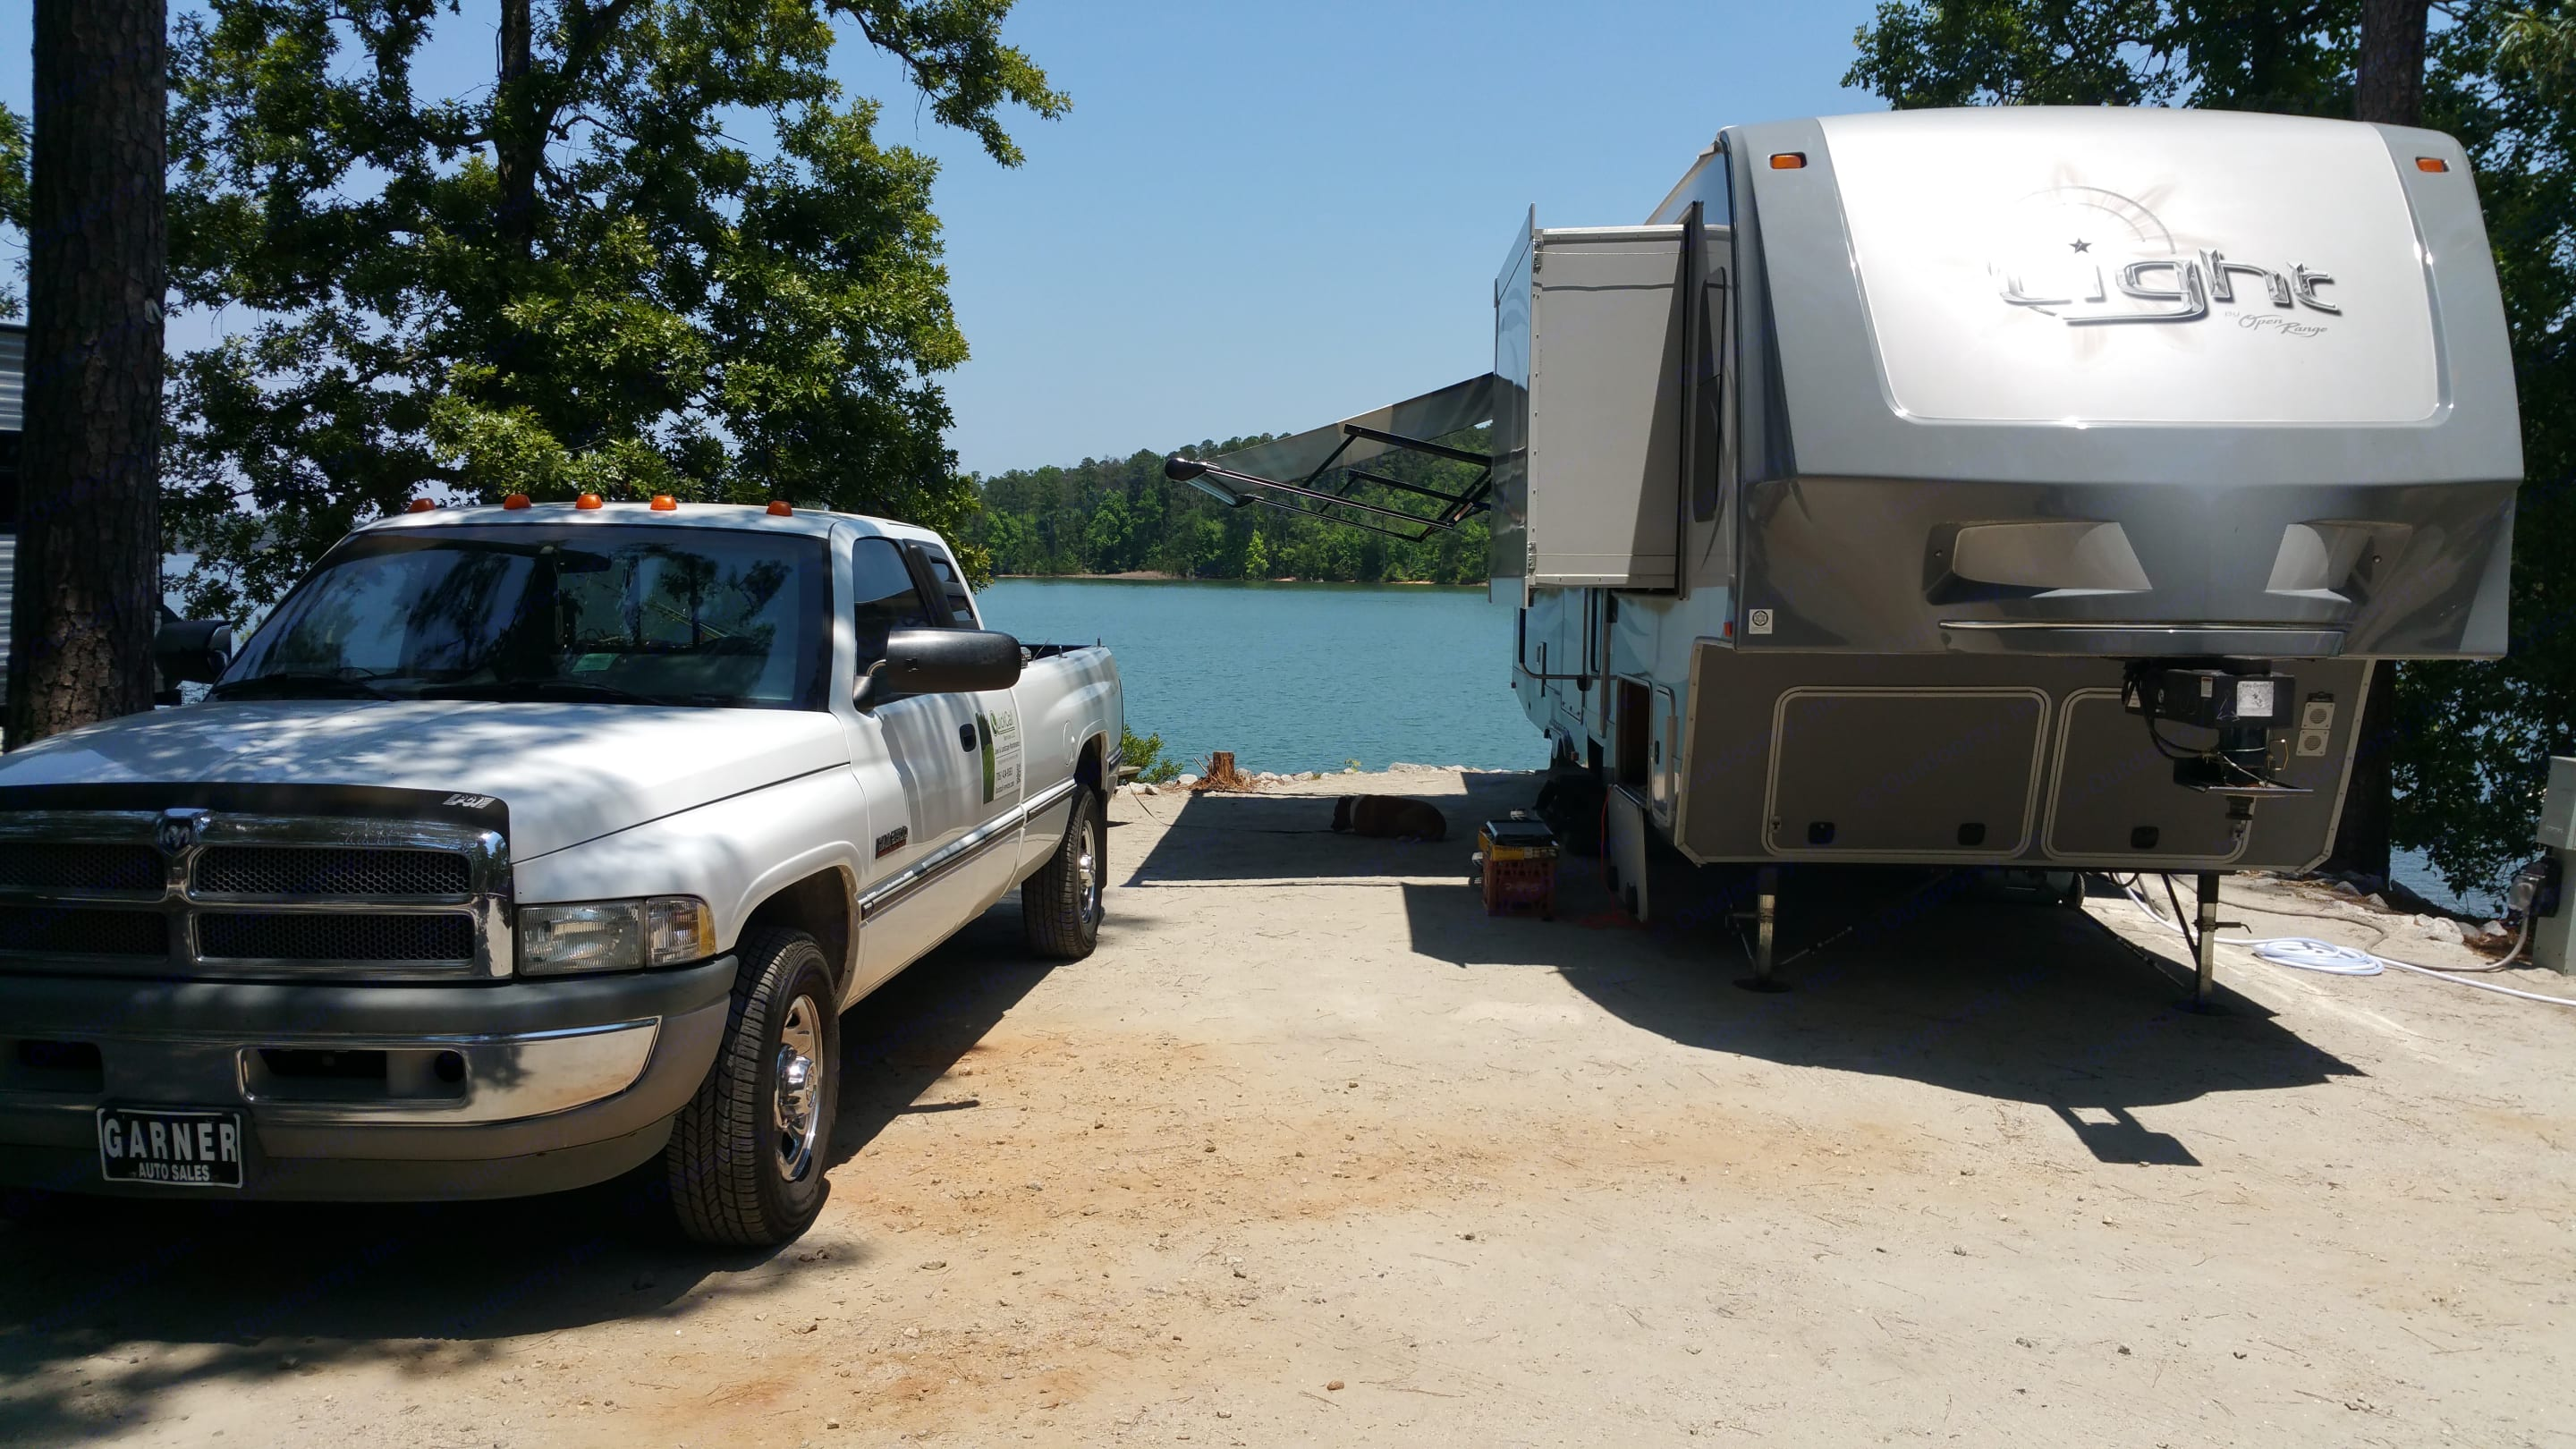 On the banks of Lake Thermond at Wildwood Campground, GA. Open Range Light 311FLR 2015